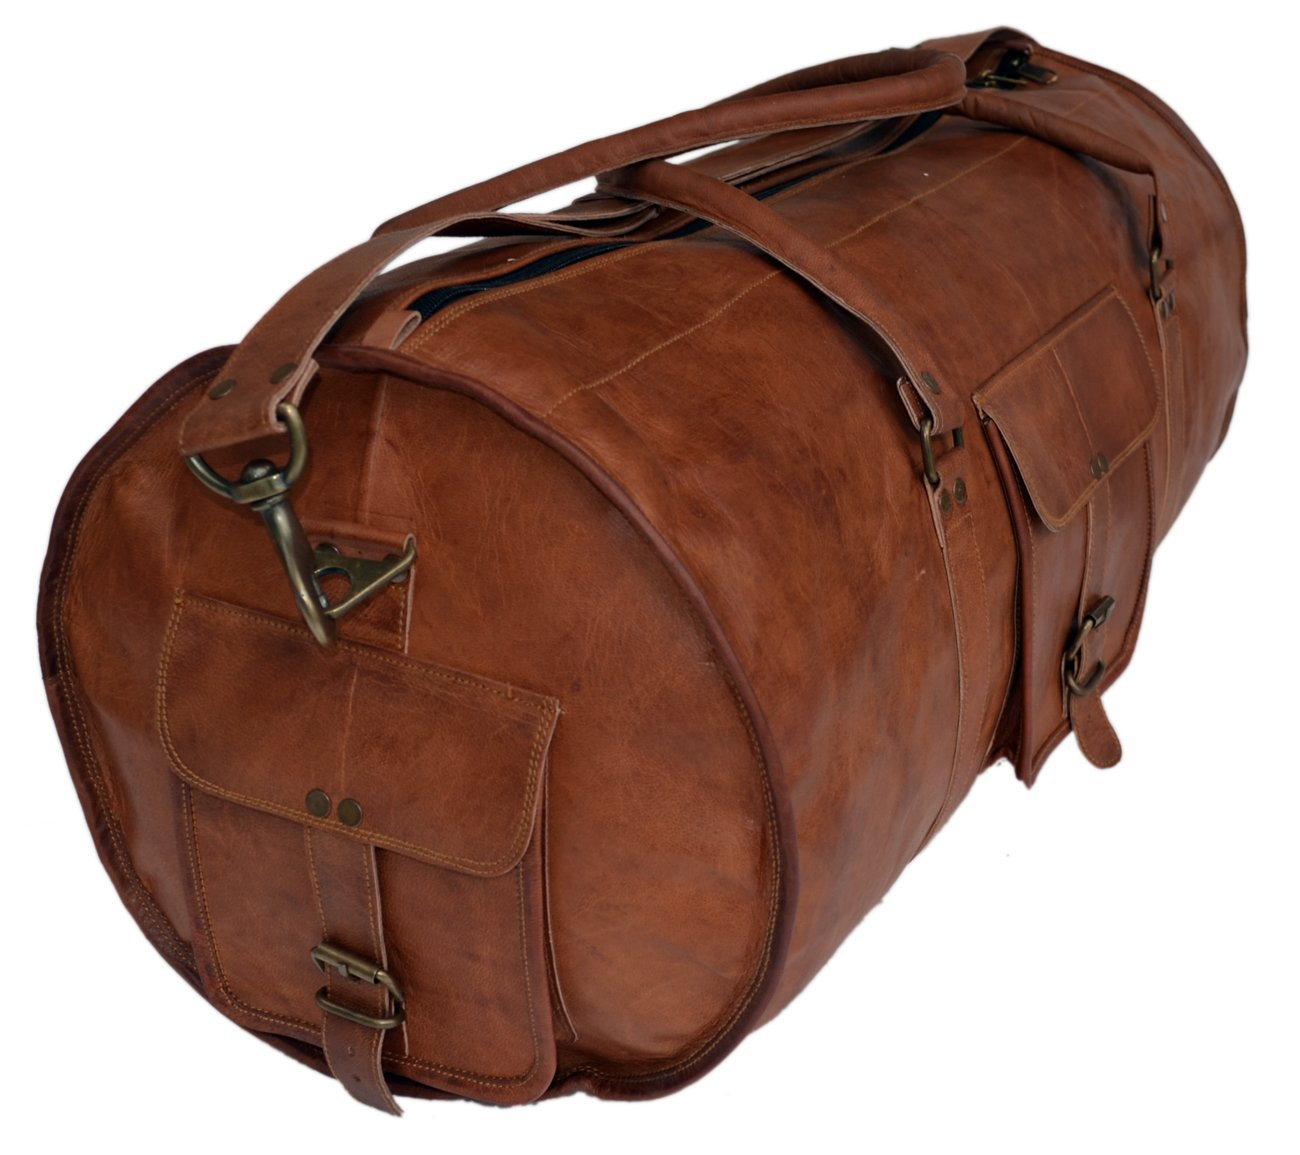 Genuine Full Grain Leather Round Duffel Weekender Bag with Top Handle